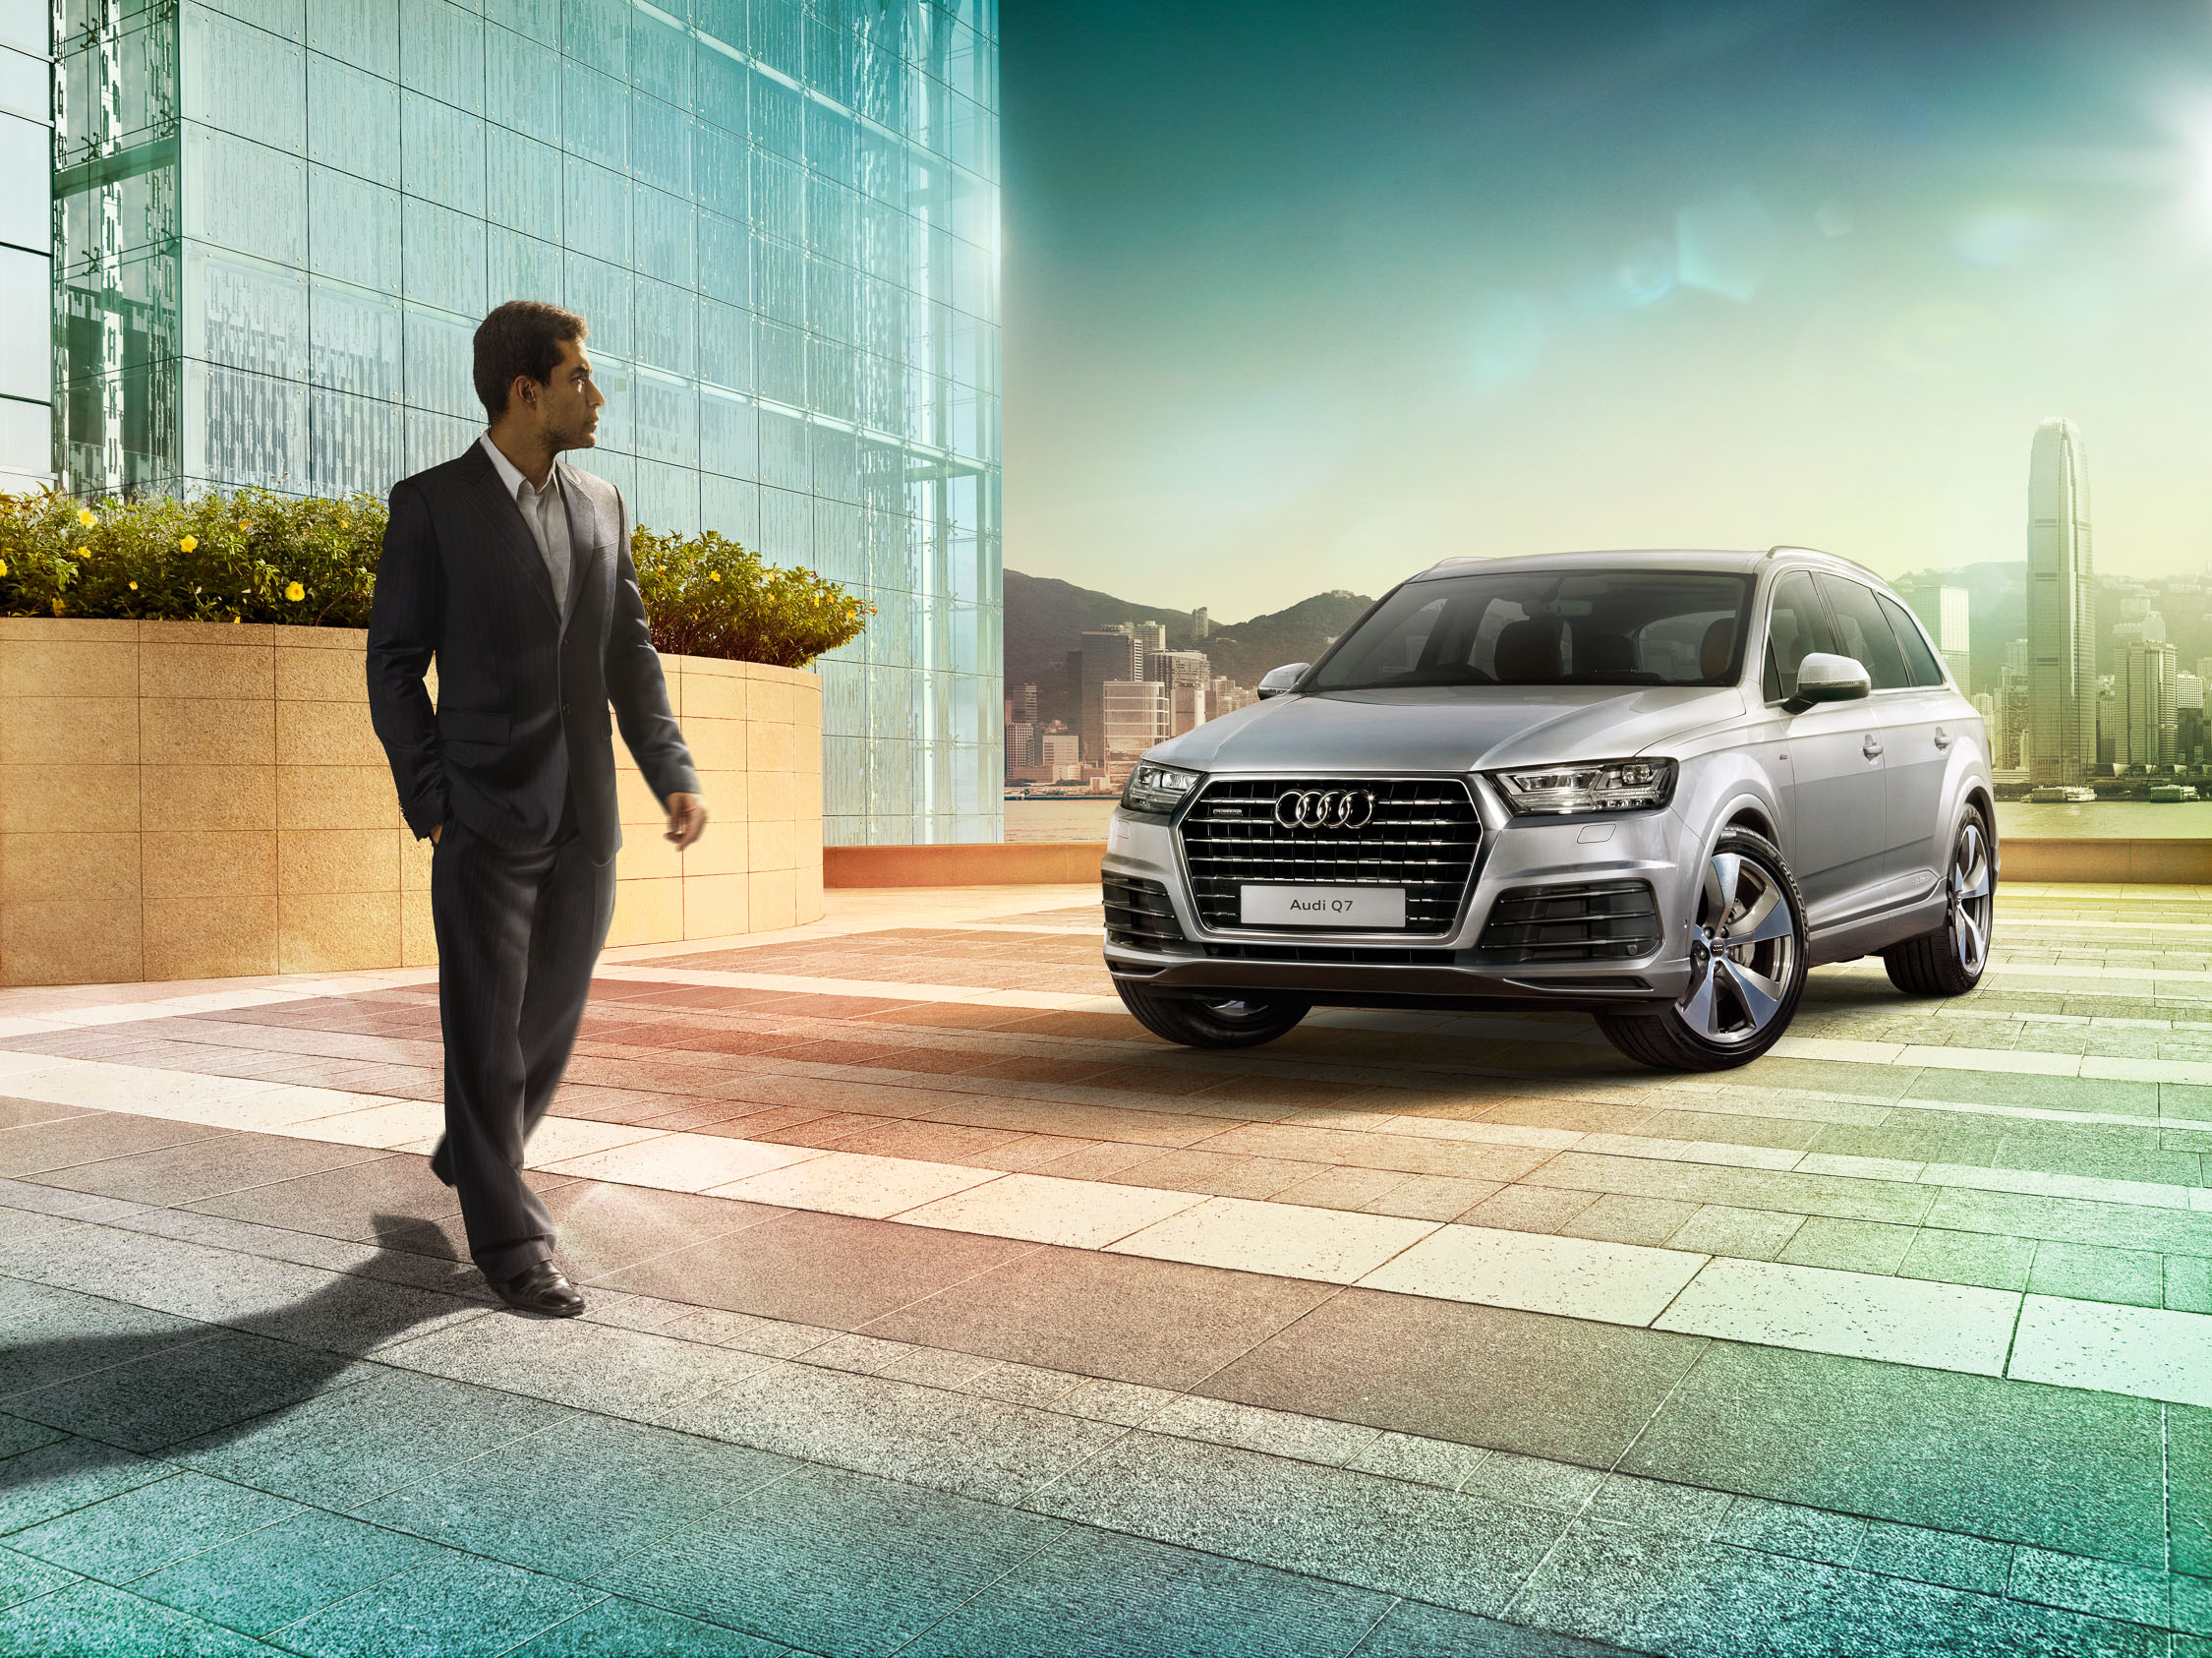 migs-foto-cgi-photographer-automotive-car-hong-kong-michael-lee-advtertising-commercial-photography-Audi-2016-HK Q7_ICC_FINAL-2.25K